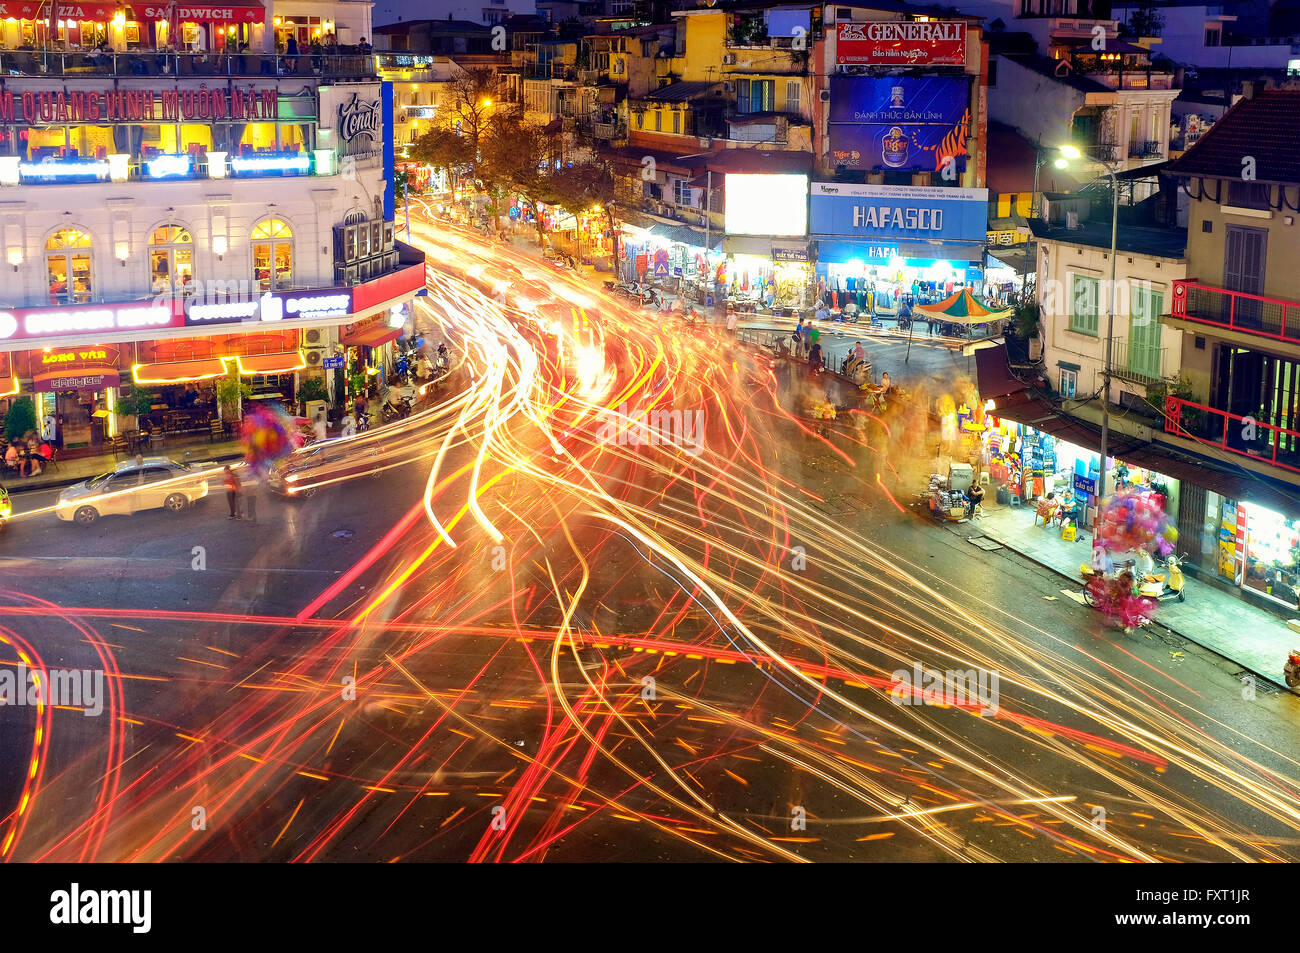 Ham Ca Map Crossroad in Hanoi, Vietnam Stock Photo